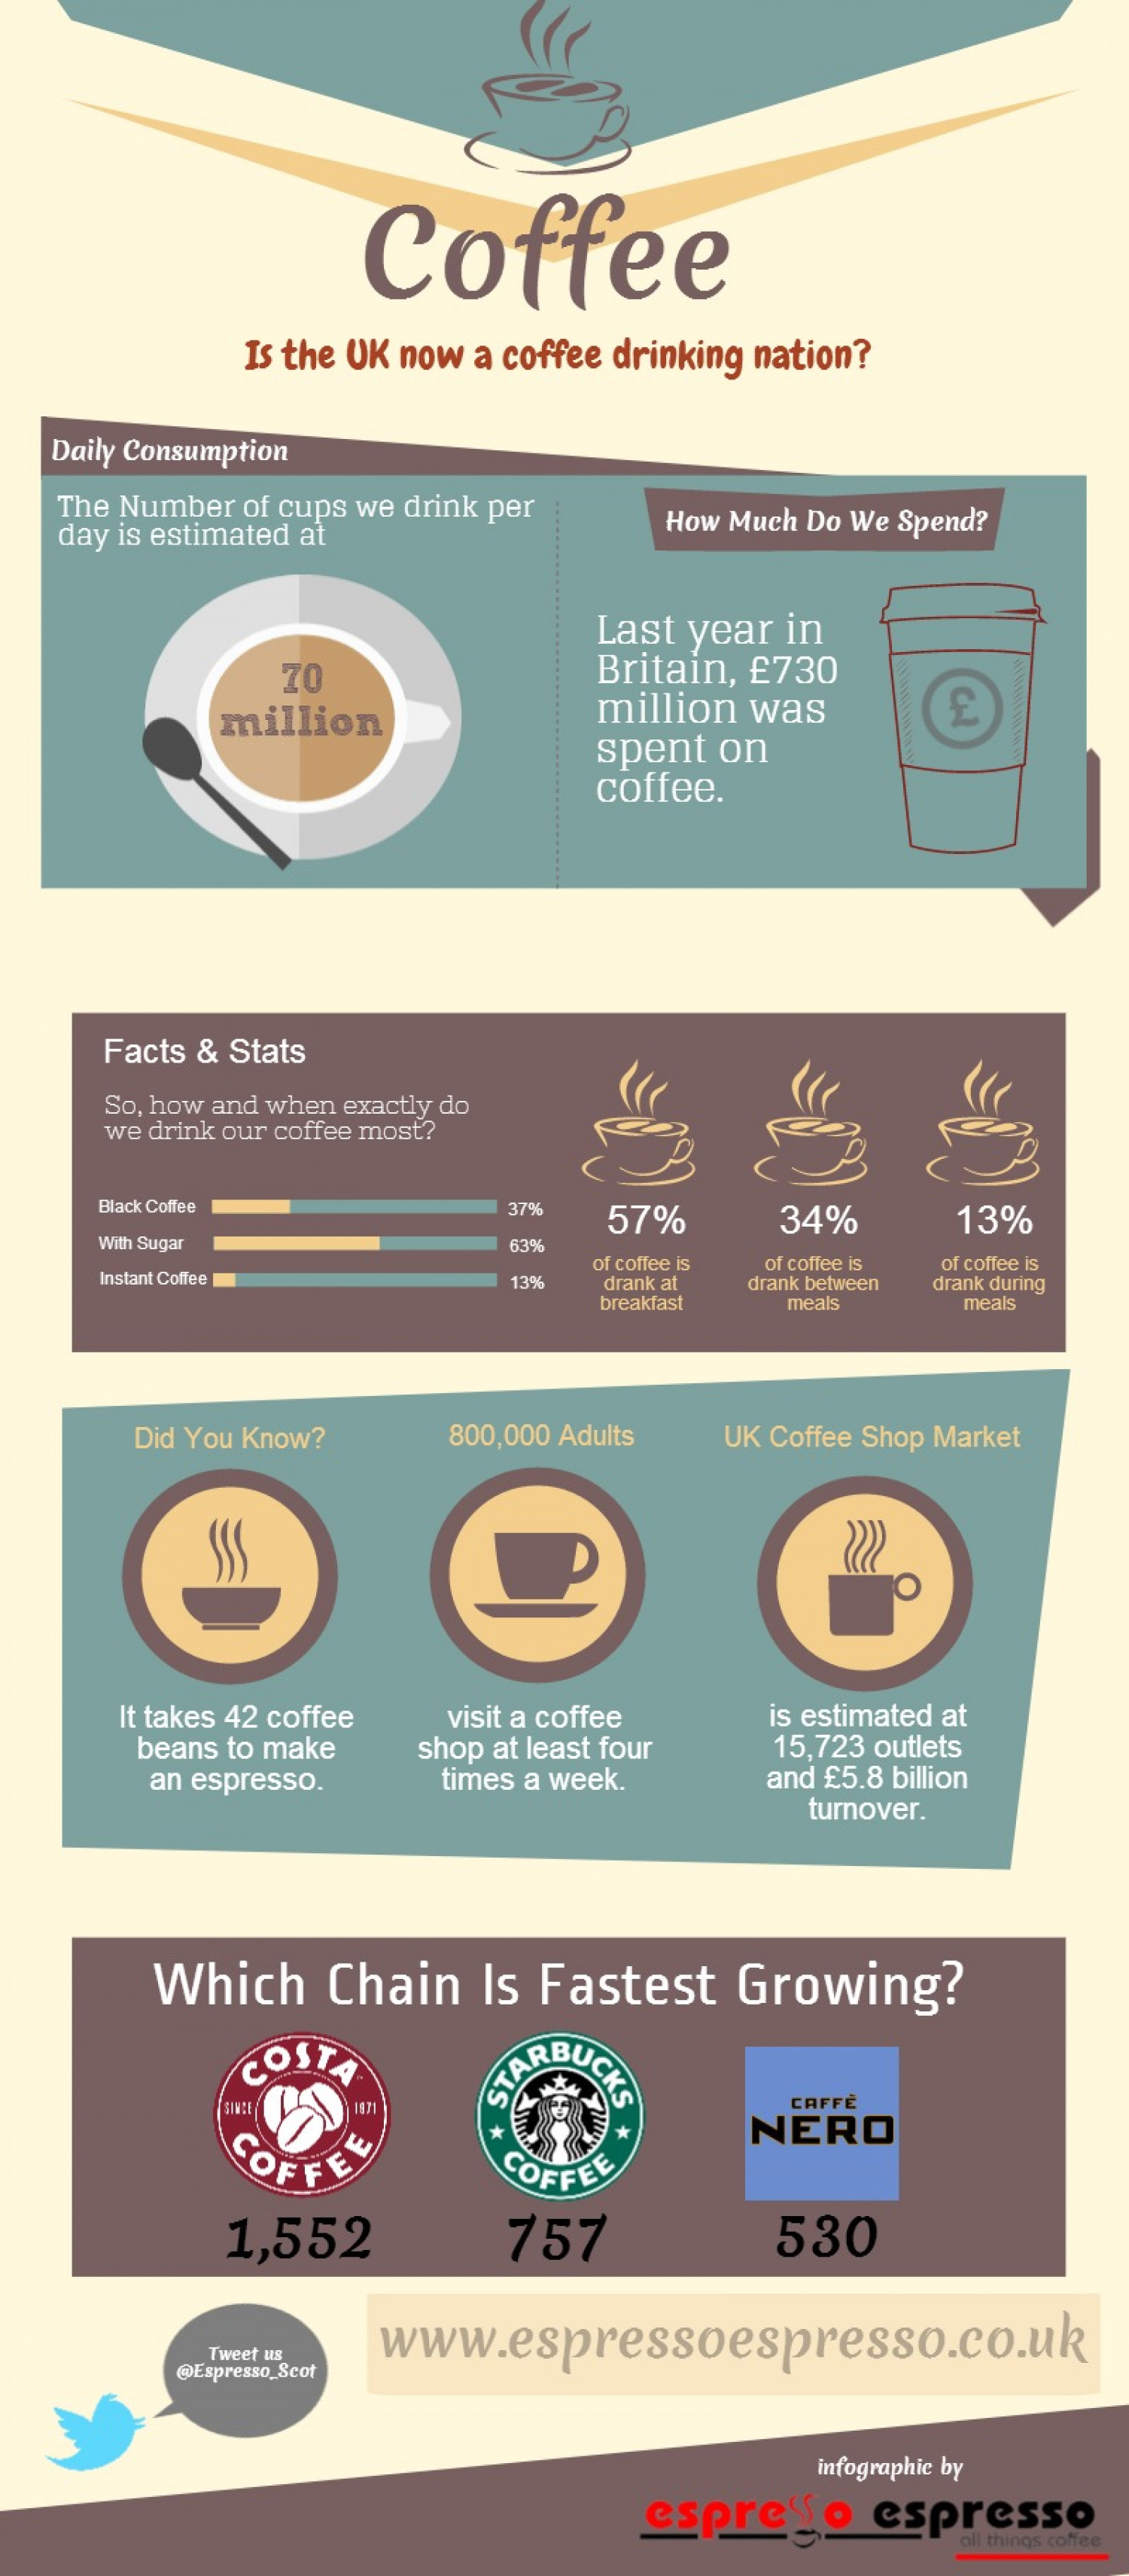 Is the UK Now a Coffee Drinking Nation? Infographic